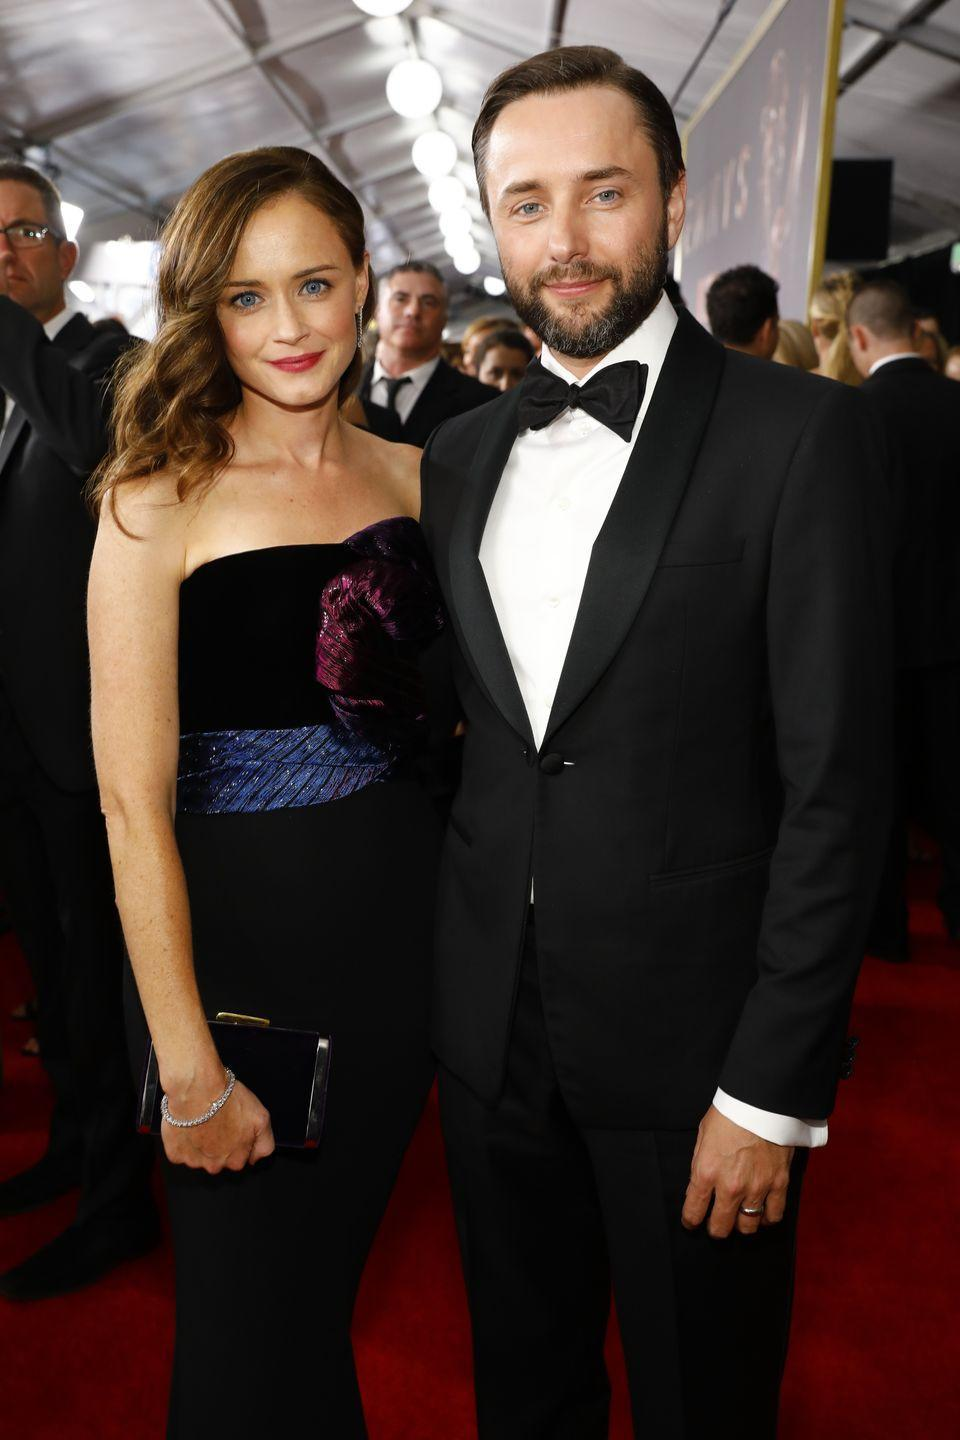 "<p>The pair first met while playing secret lovers on the set of <em>Mad Men</em> and managed to keep their relationship under wraps—give or take a few red carpet appearances—before getting married in 2014. And around the same time rumors began to swirl of a <em>Gilmore Girls</em> revival, Bledel and Kartheiser <a href=""http://people.com/tv/how-alexis-bledel-hid-her-pregnancy-vincent-kartheiser-and-her-reclusive-life/"" rel=""nofollow noopener"" target=""_blank"" data-ylk=""slk:welcomed their first child"" class=""link rapid-noclick-resp"">welcomed their first child</a> in the fall of 2015. </p>"